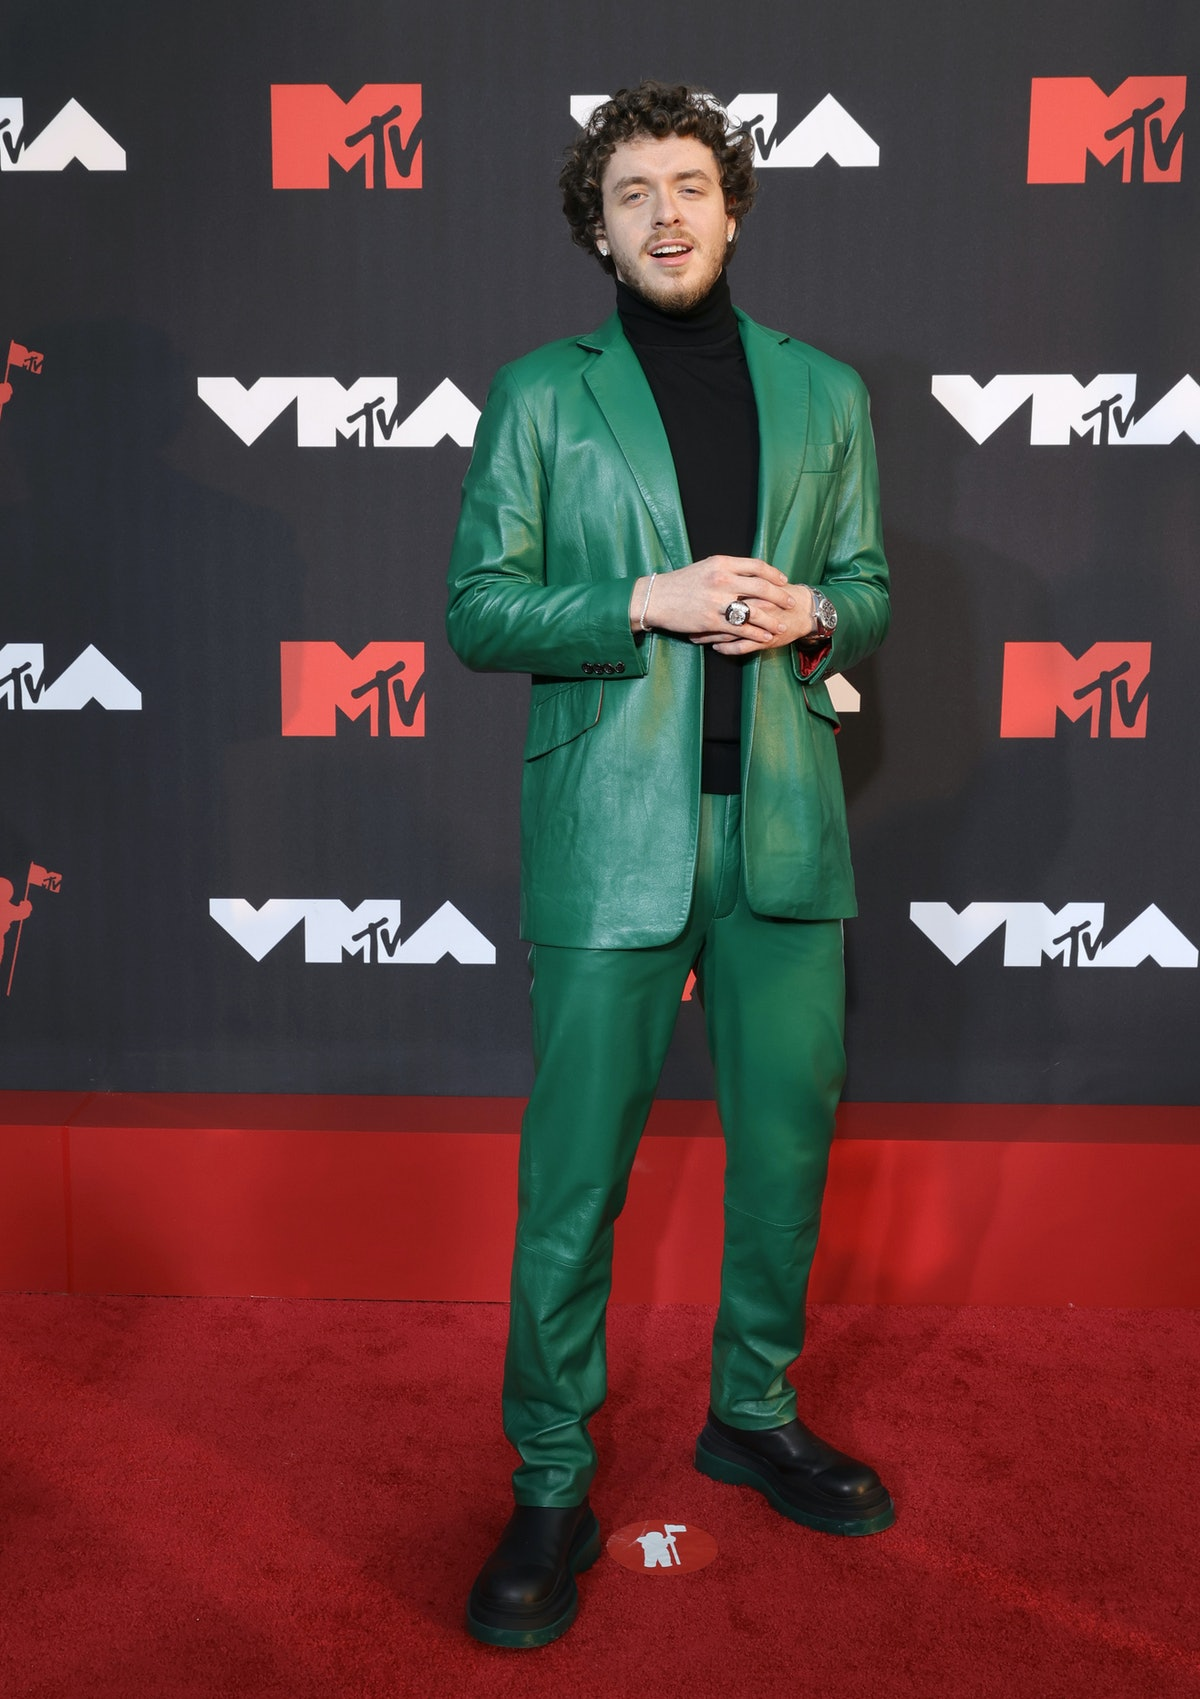 Jack Harlow attends the 2021 MTV Video Music Awards at Barclays Center on September 12, 2021 in the ...